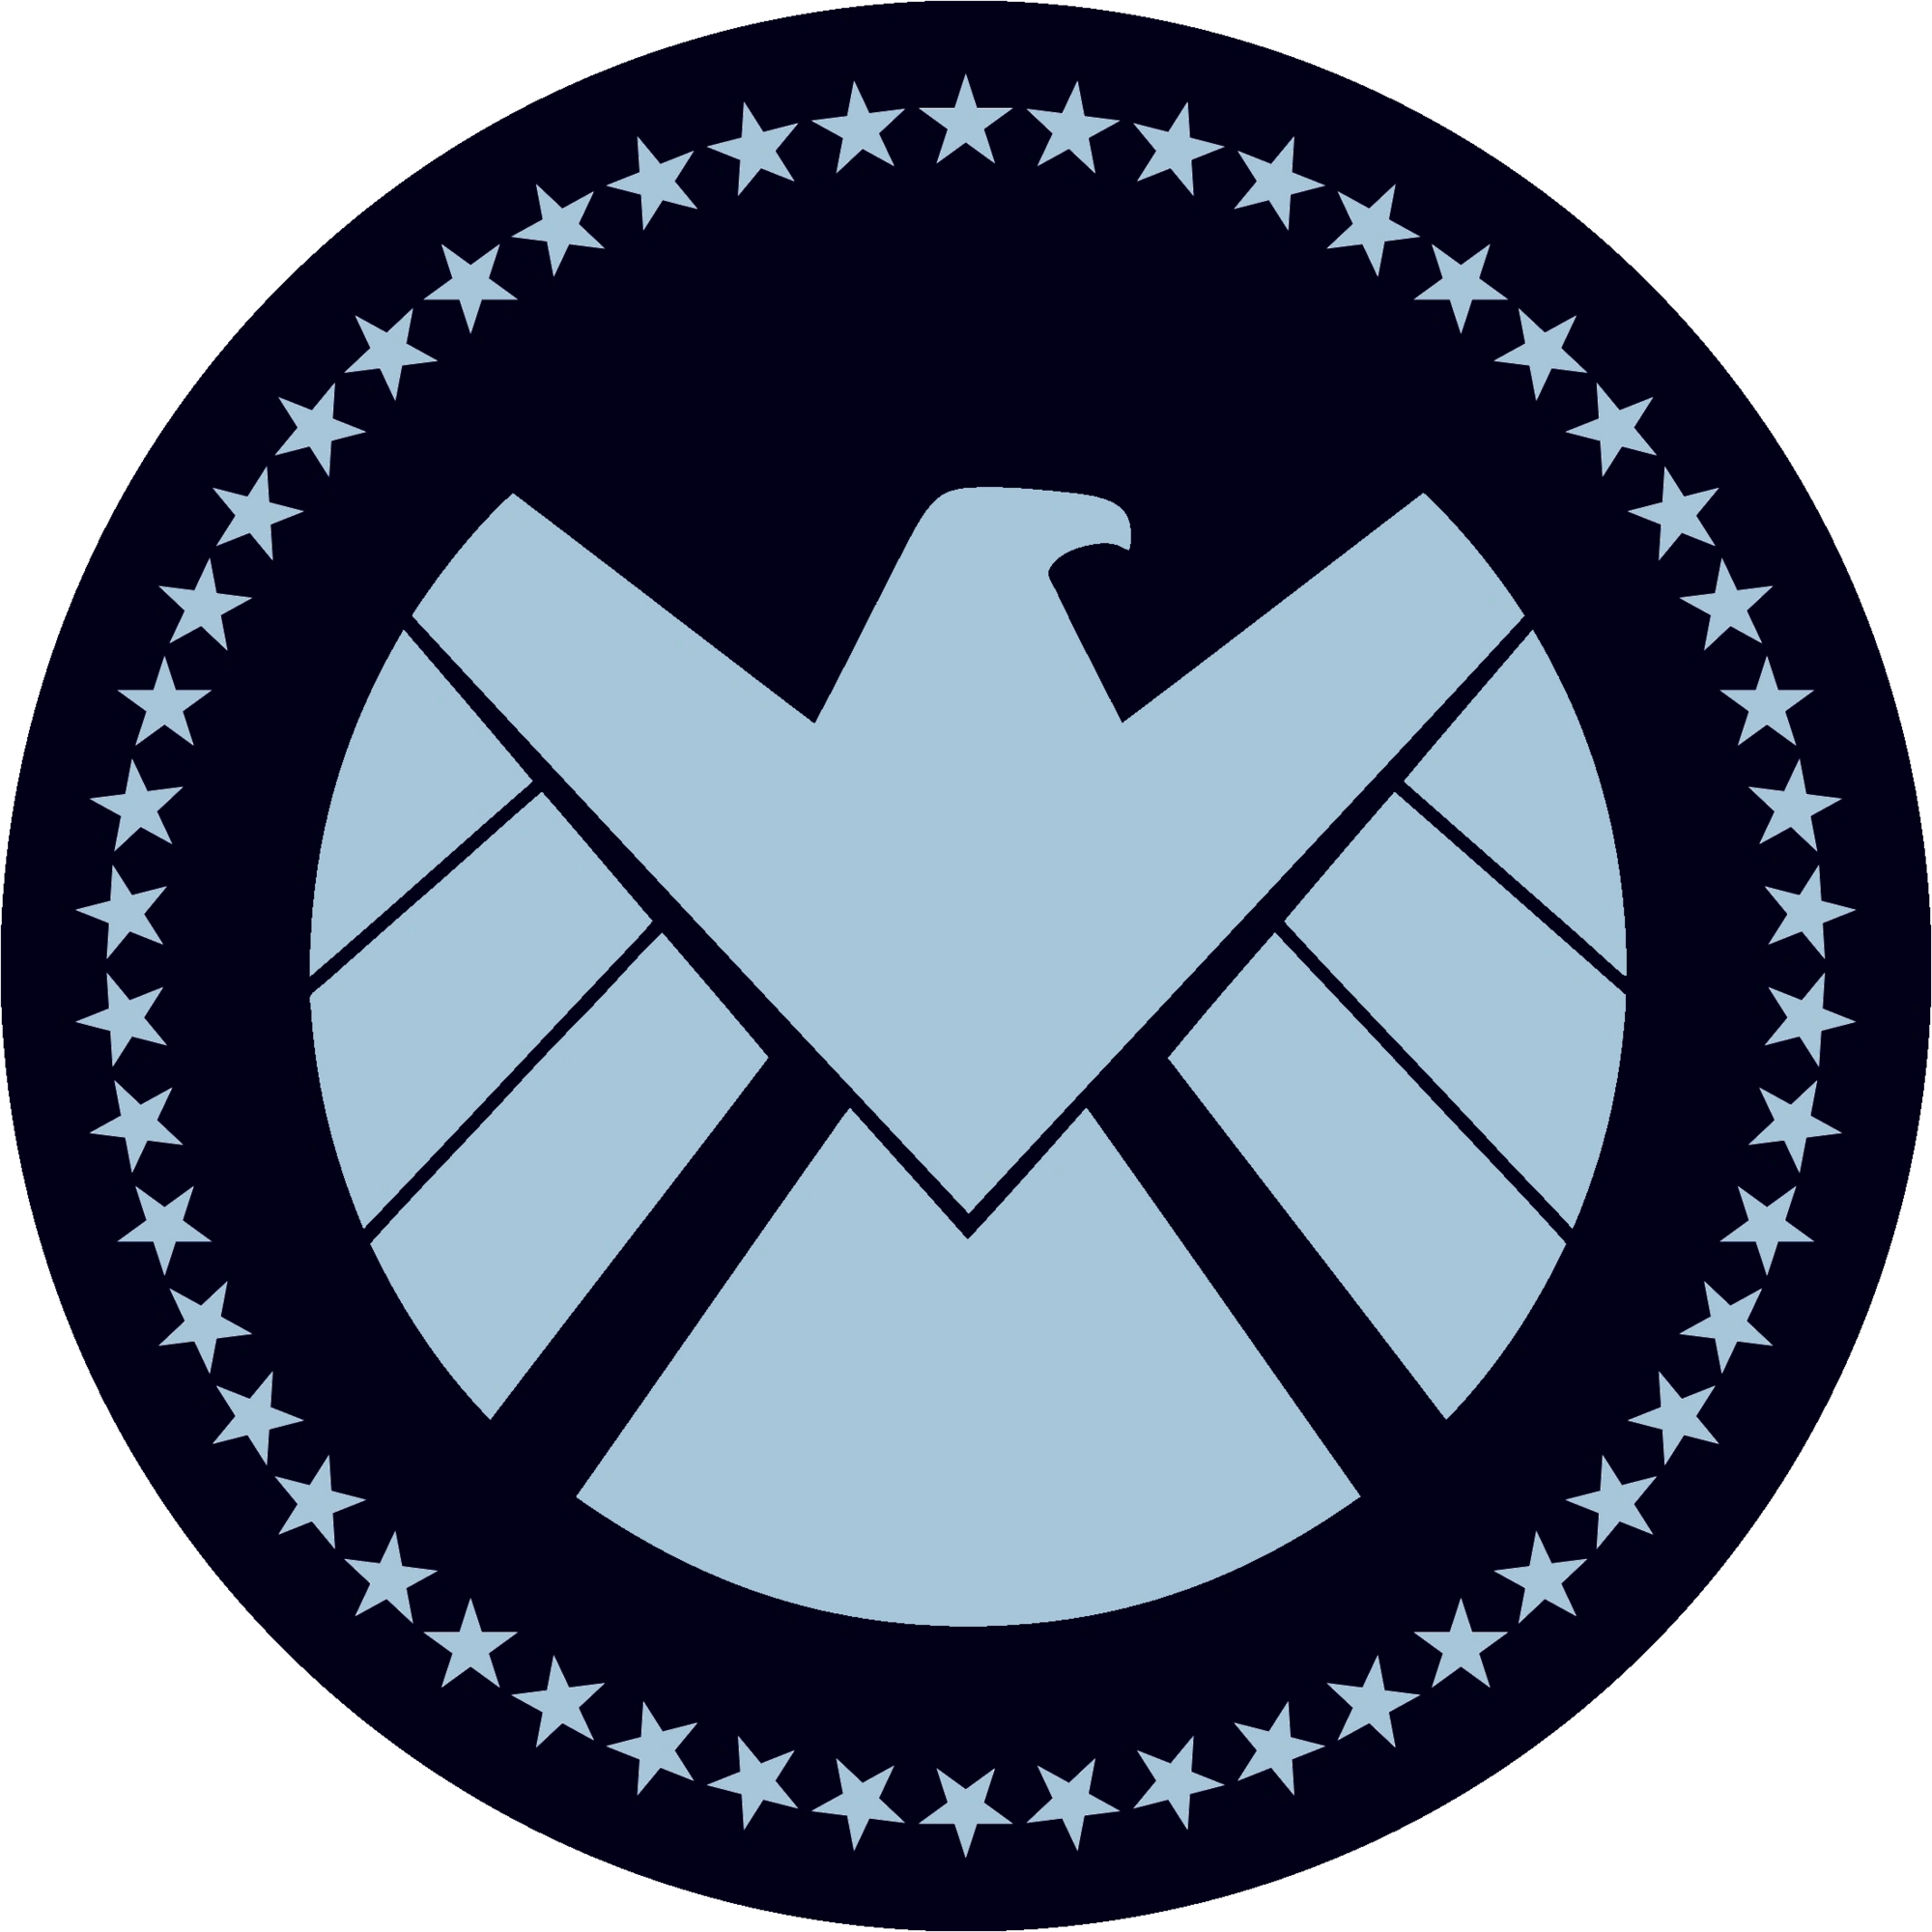 ffadb1a93 S.H.I.E.L.D. | Marvel Cinematic Universe Wiki | FANDOM powered by Wikia